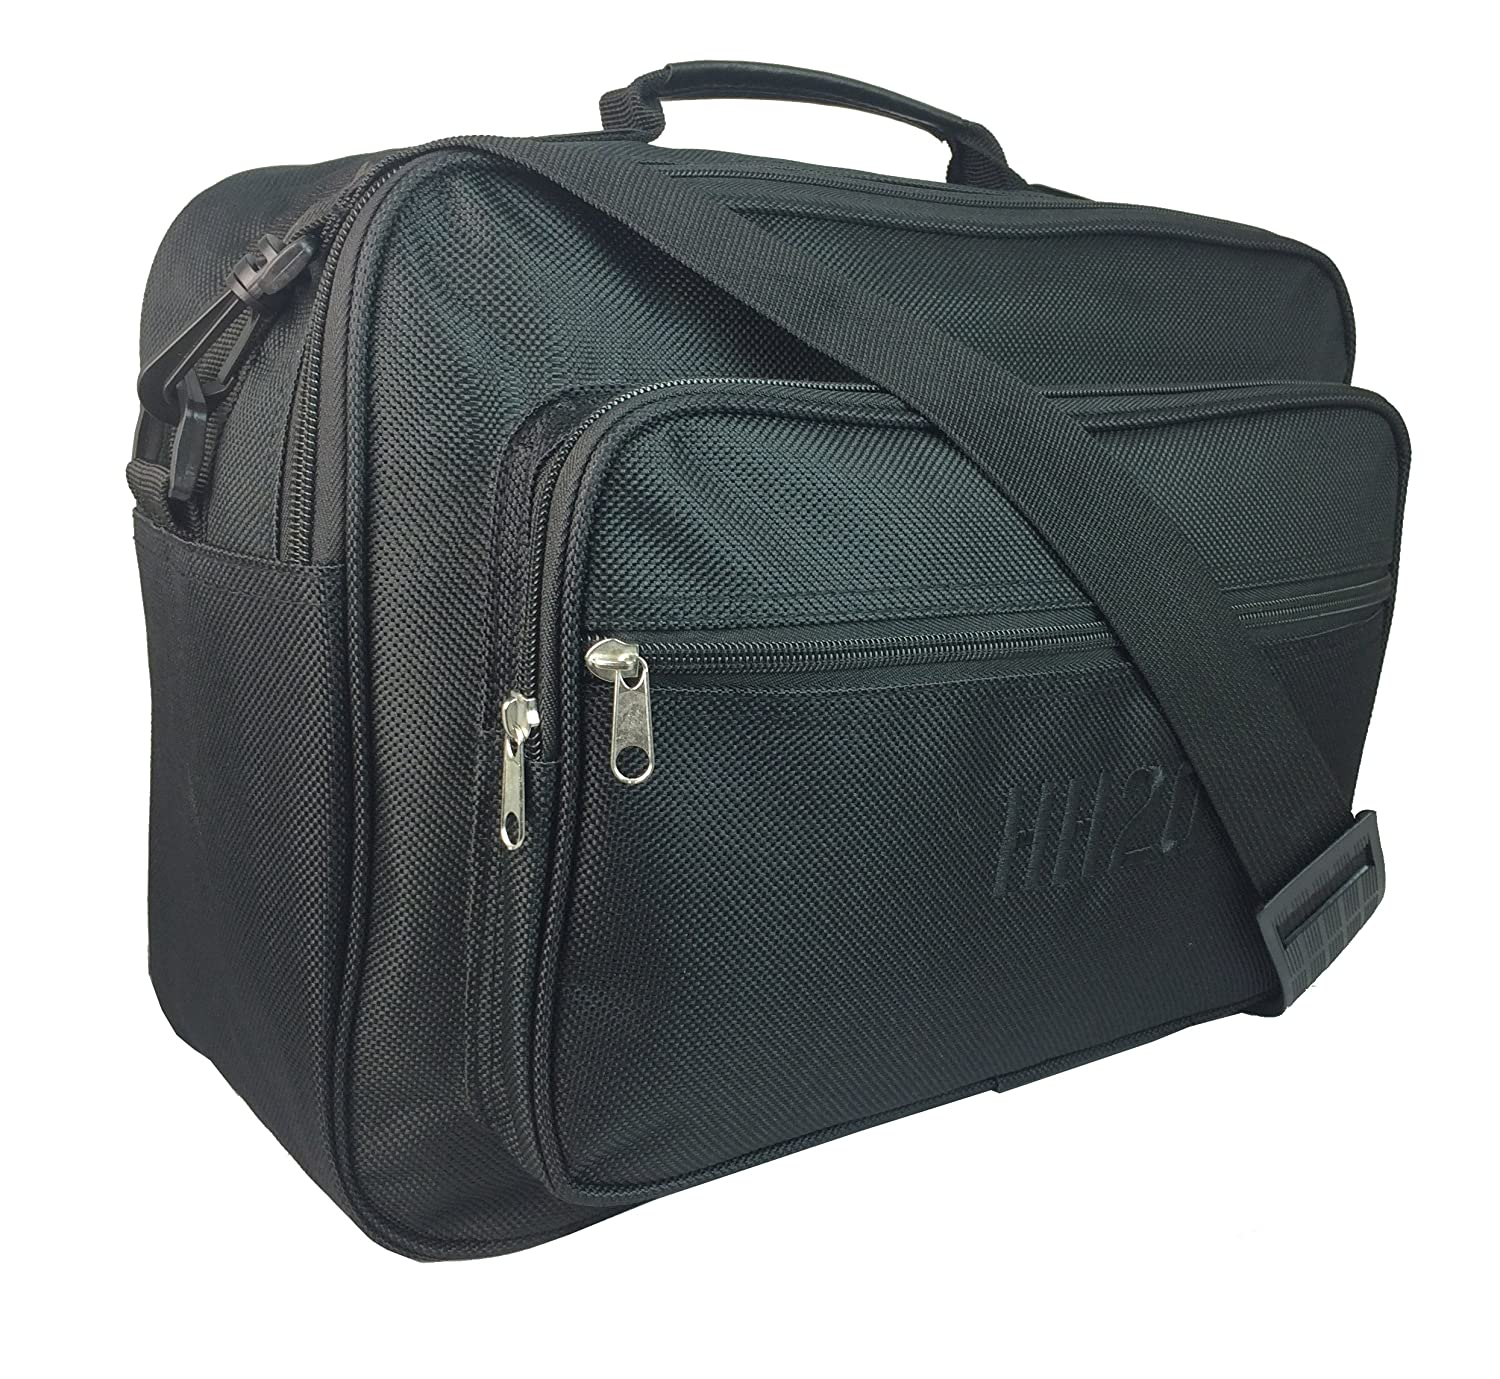 54cdfc6a91 Mens Small Hand Luggage Bag